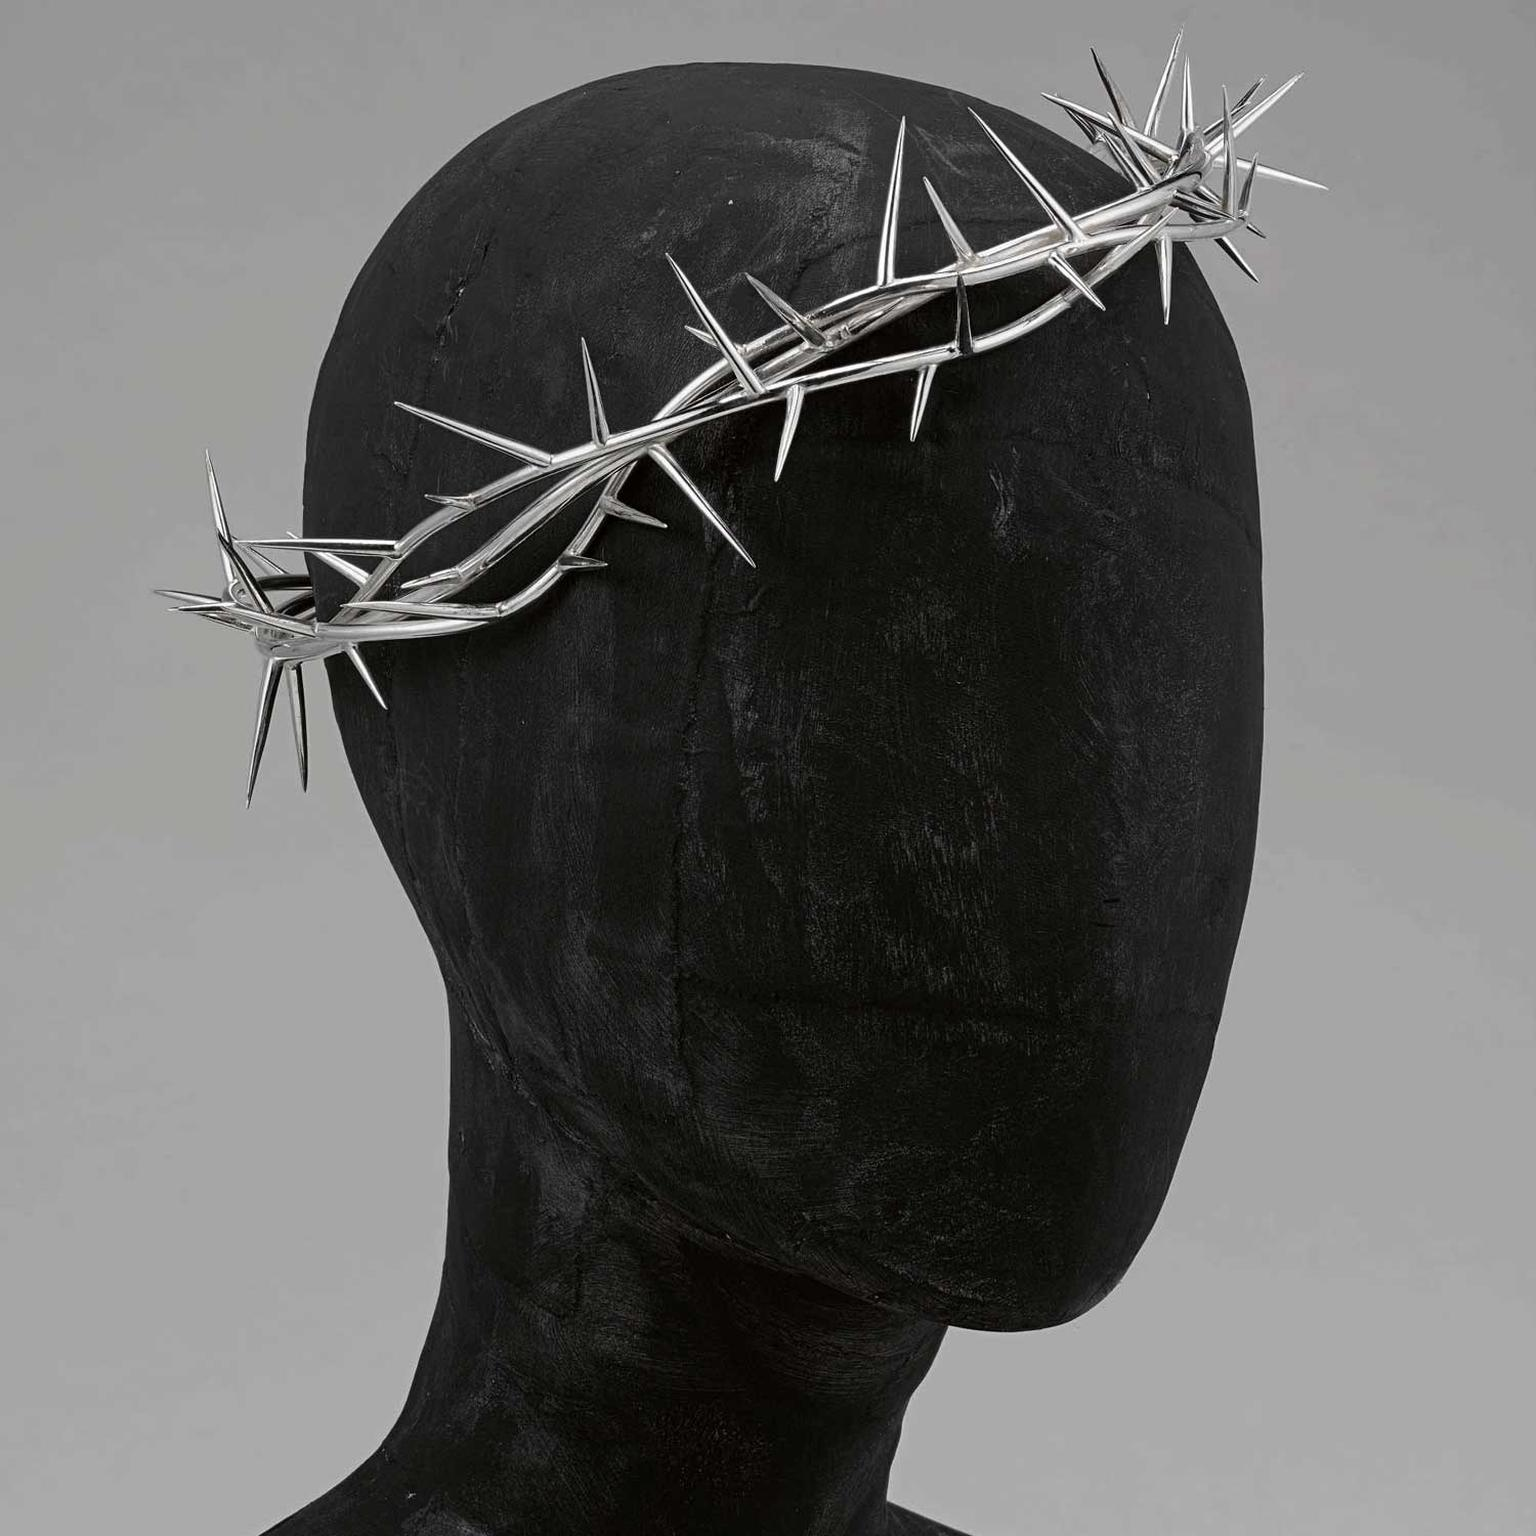 Shaun Leane Crown of Thorns